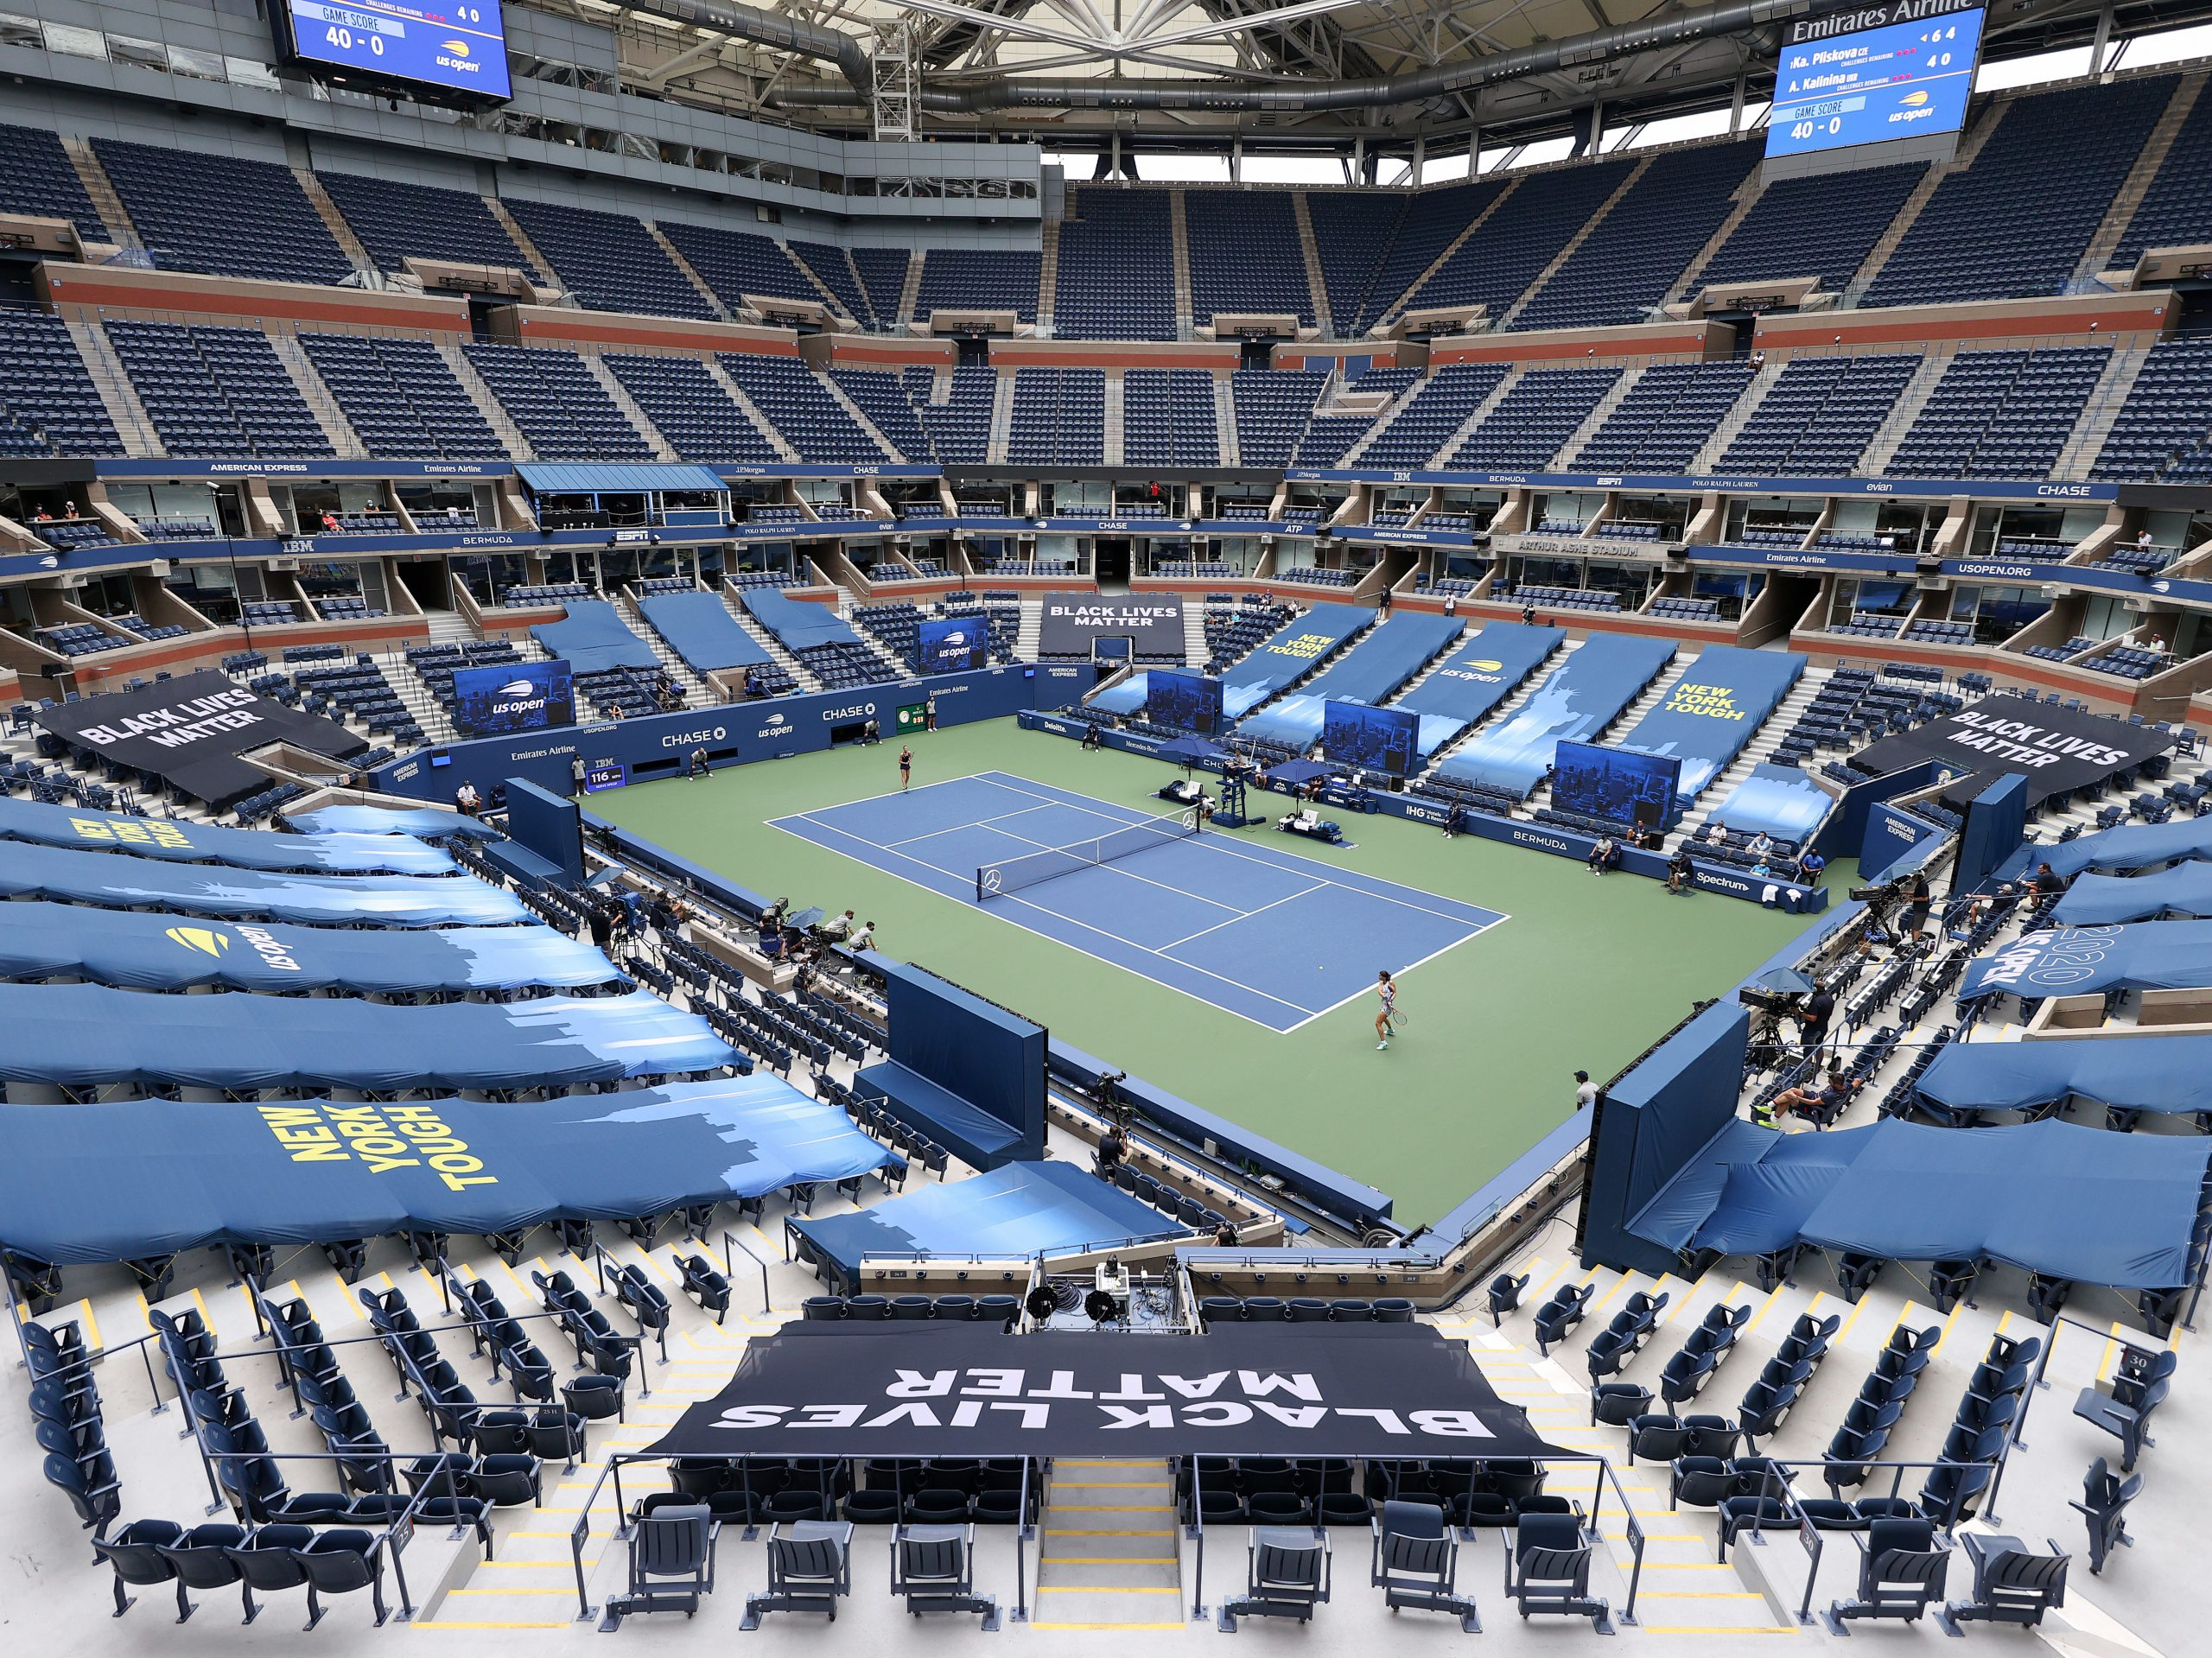 Karolina Pliskova of the Czech Republic and Anhelina Kalinina of Ukraine play their first round match at a mostly empty Arthur Ashe Stadium on Monday. This year's U.S. Open is taking place without spectators because of the coronavirus pandemic.